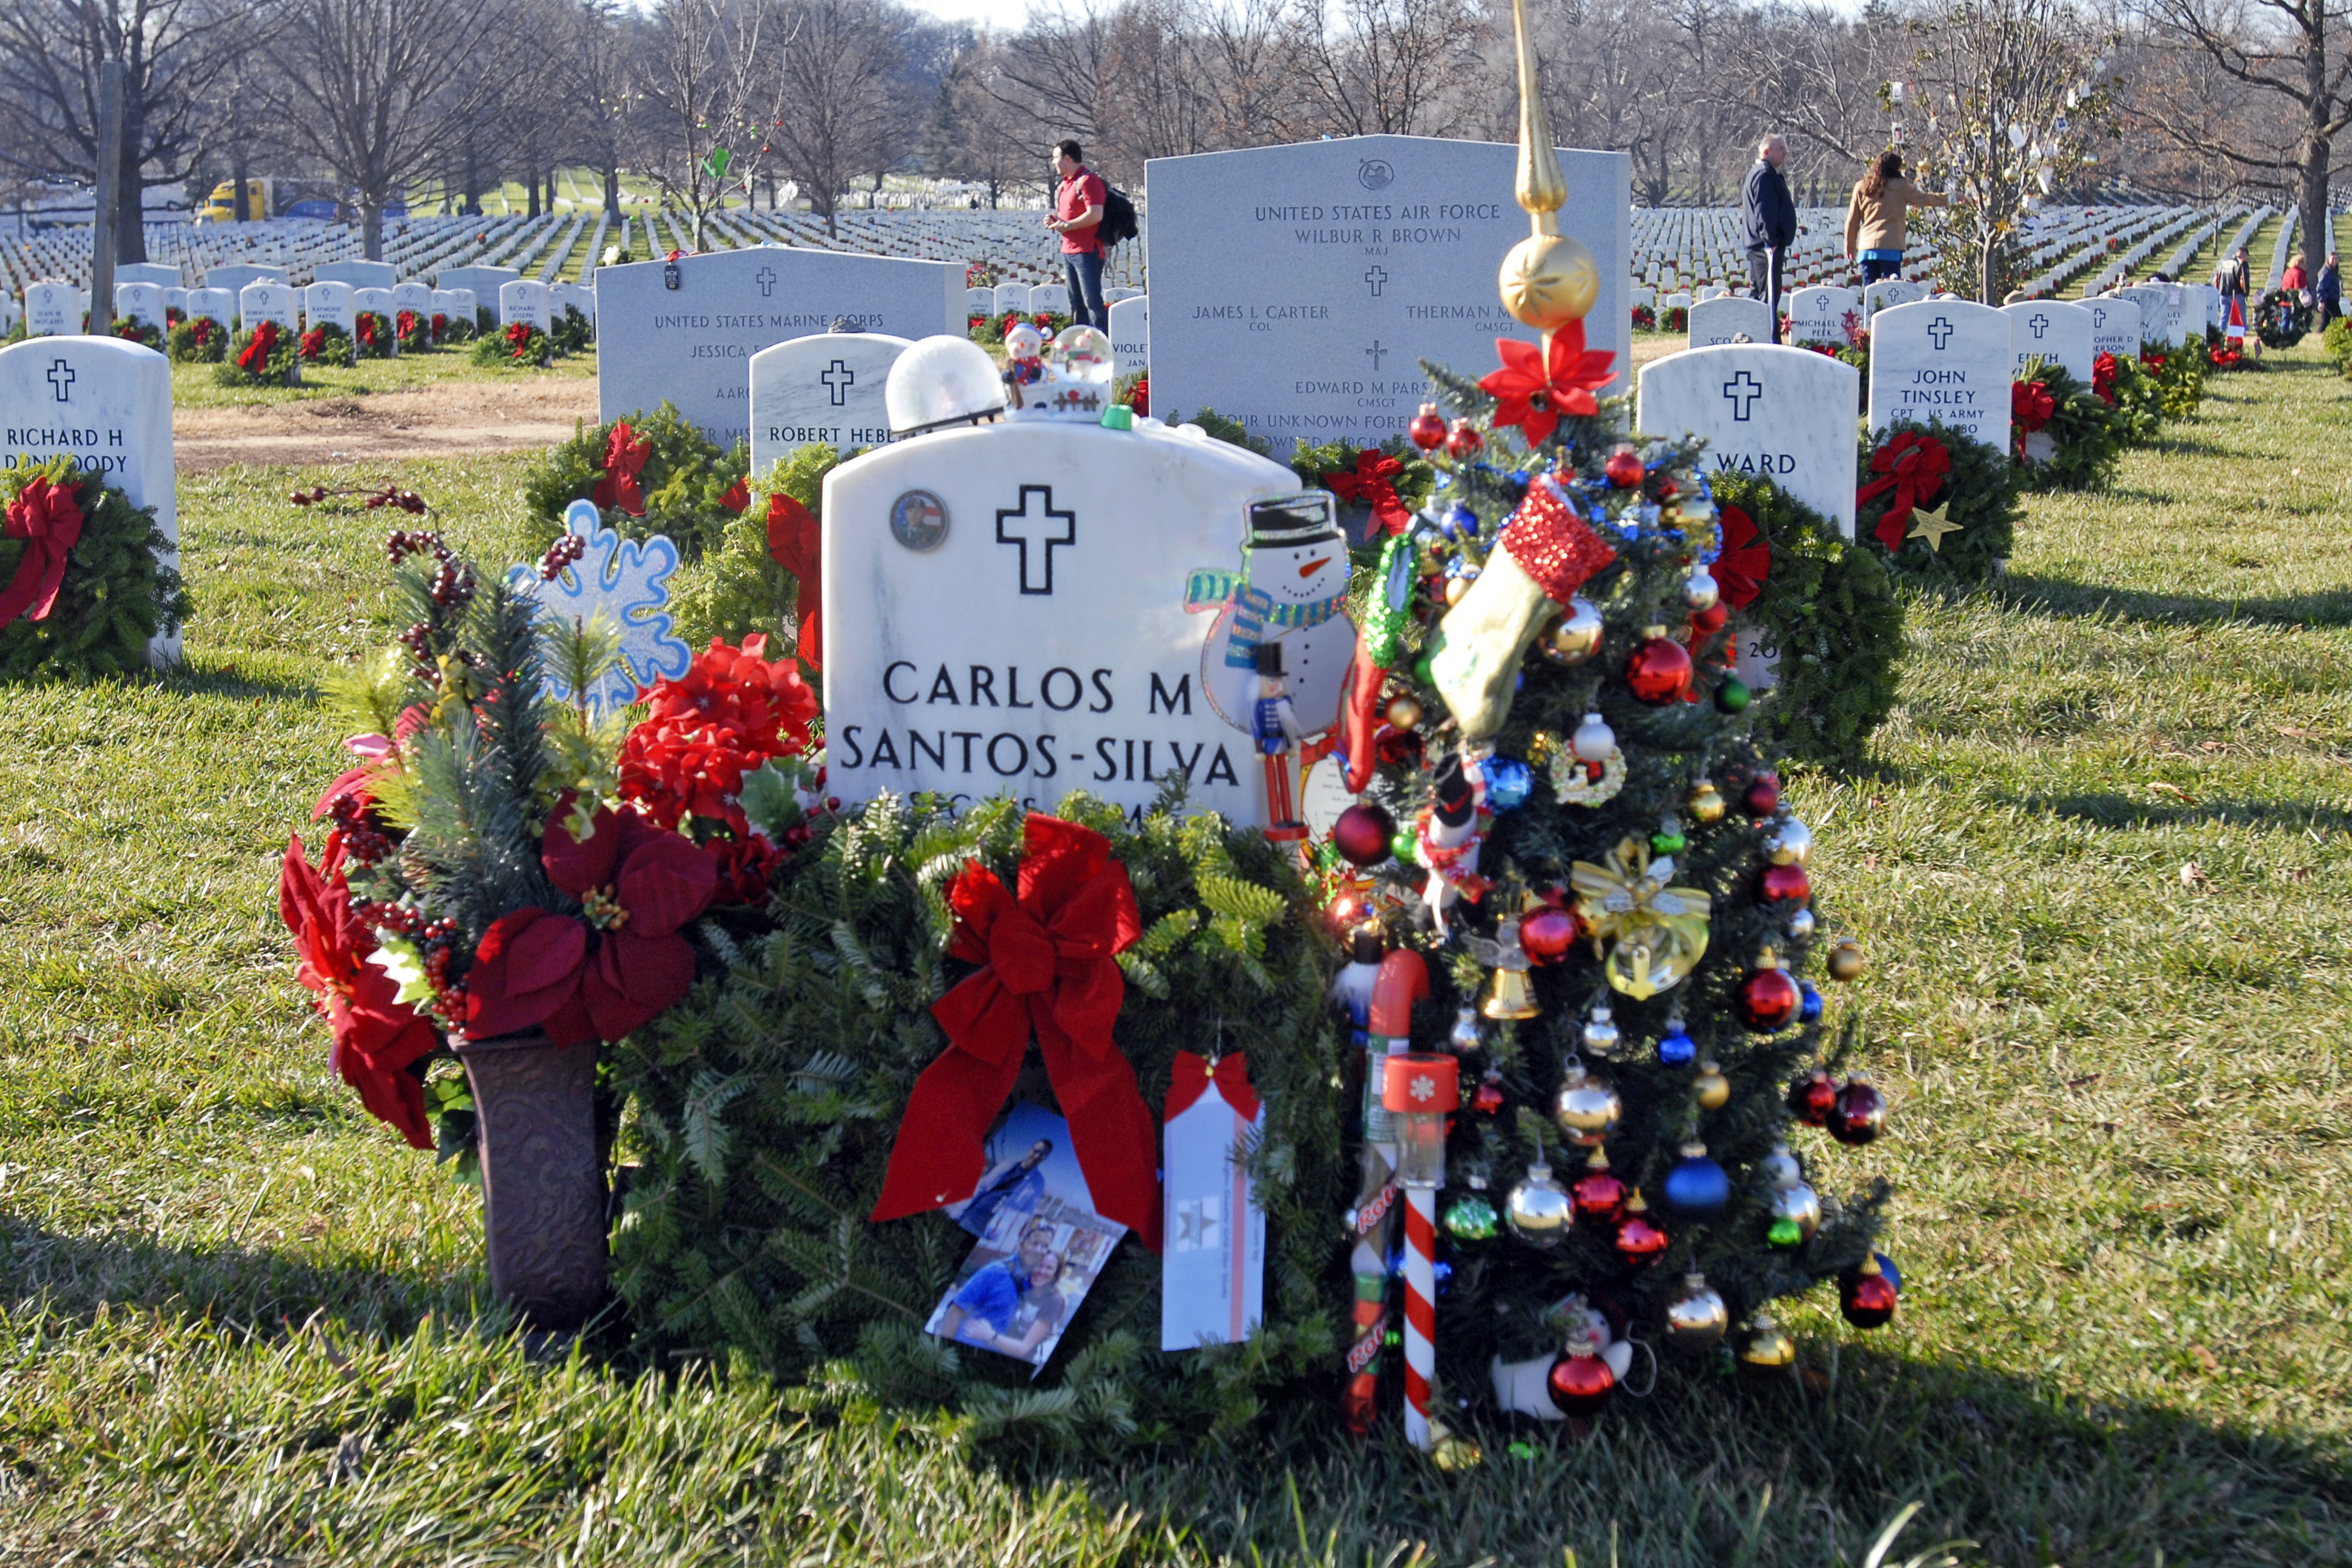 a wreath flowers and a small christmas tree are placed at the grave marker of